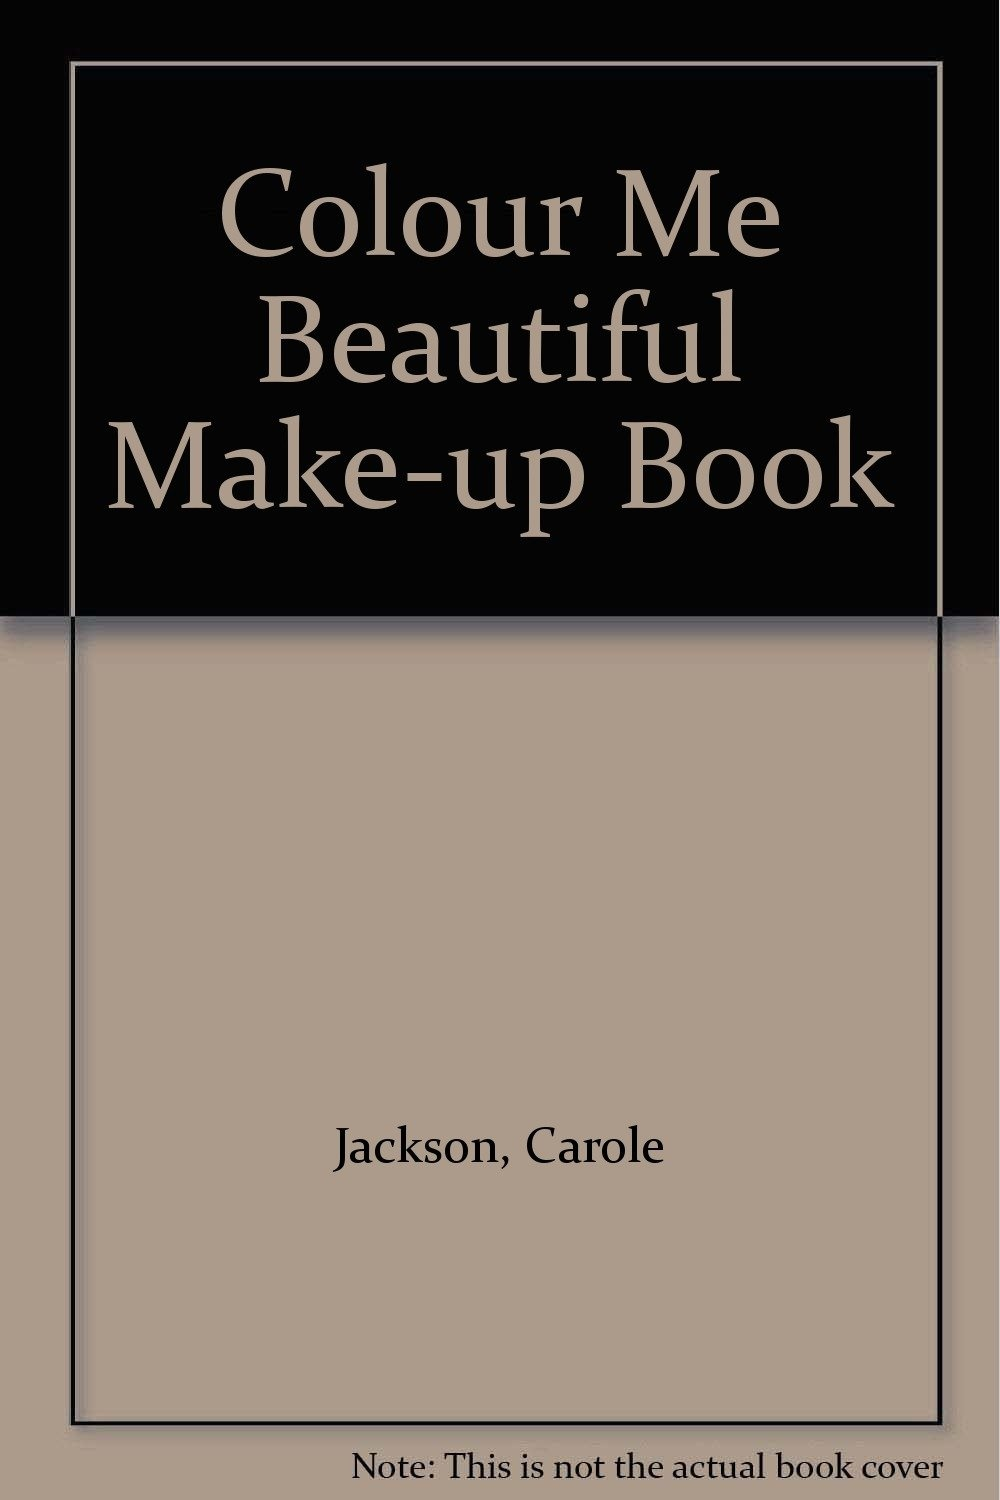 Colour Me Beautiful Books: Buy Online from Fishpond.co.nz